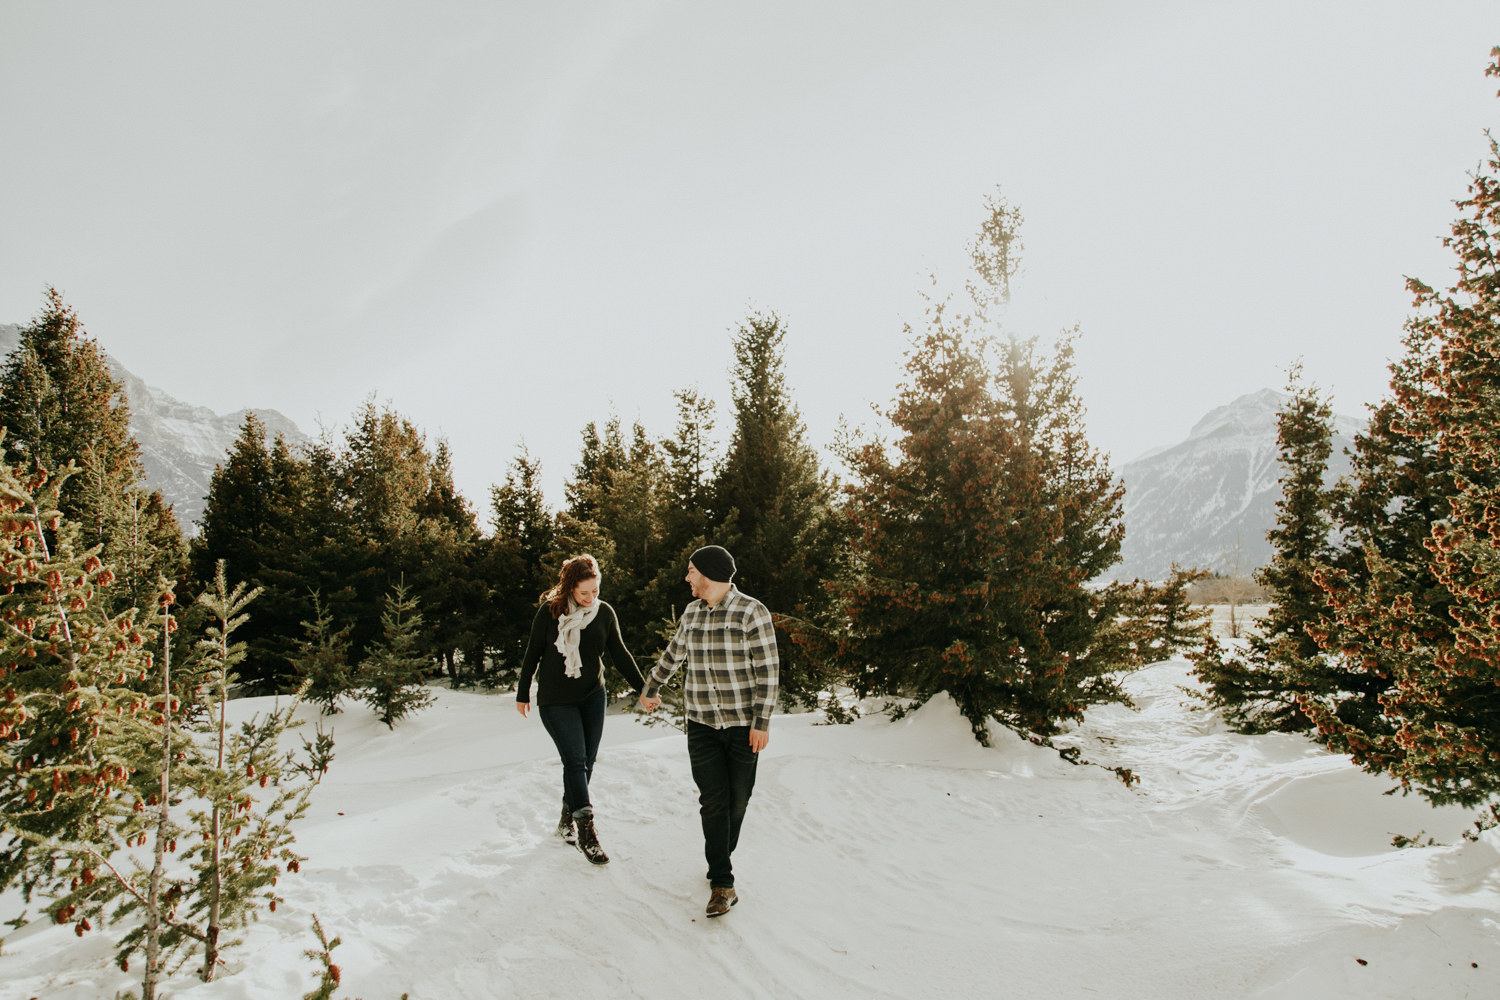 waterton-photographer-love-and-be-loved-photography-trent-danielle-engagement-winter-picture-image-photo-51.jpg